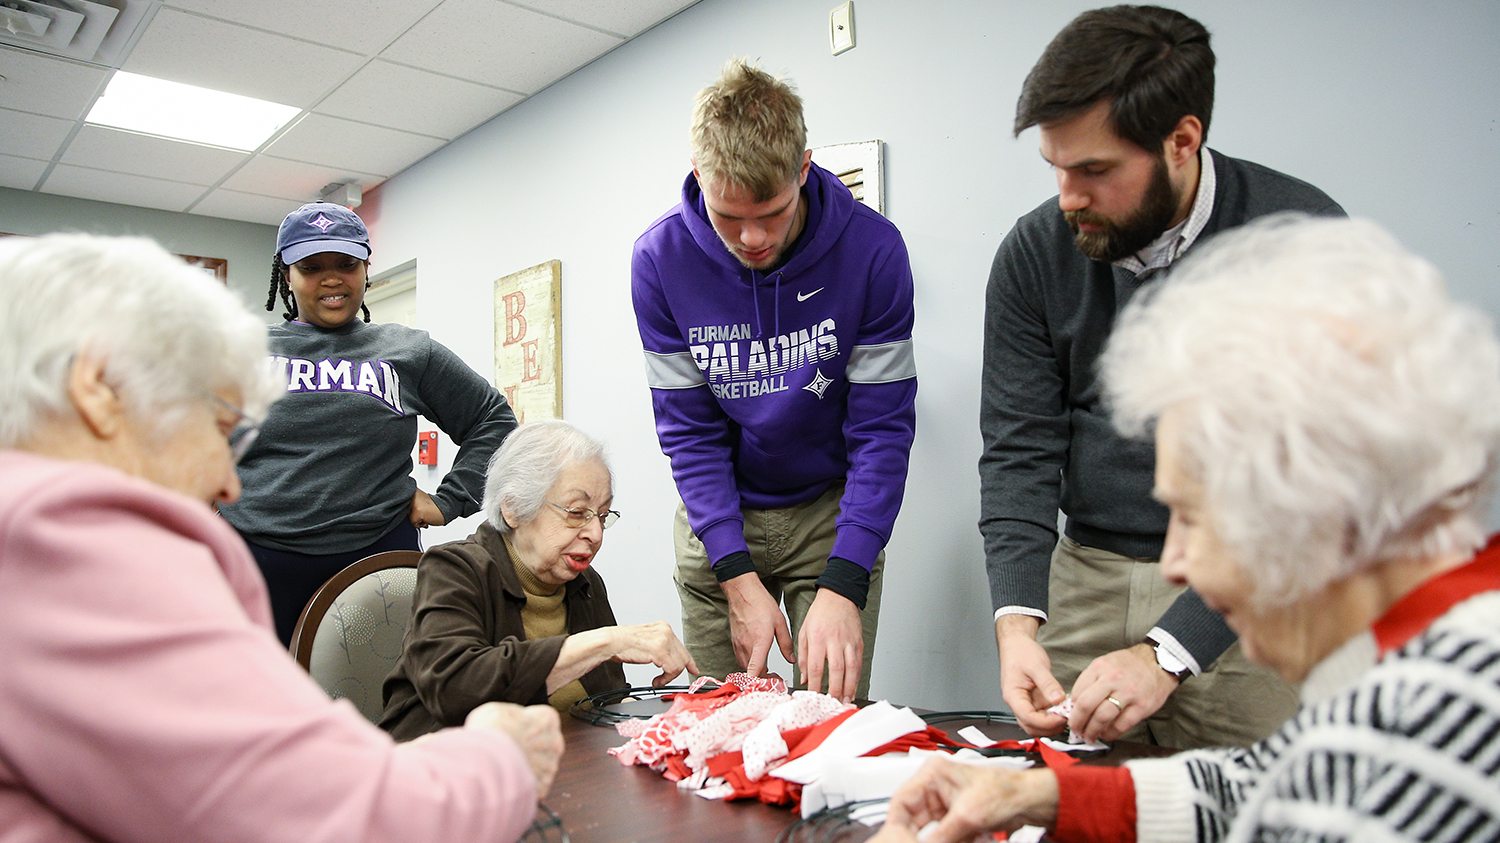 Students work with senior citizens.